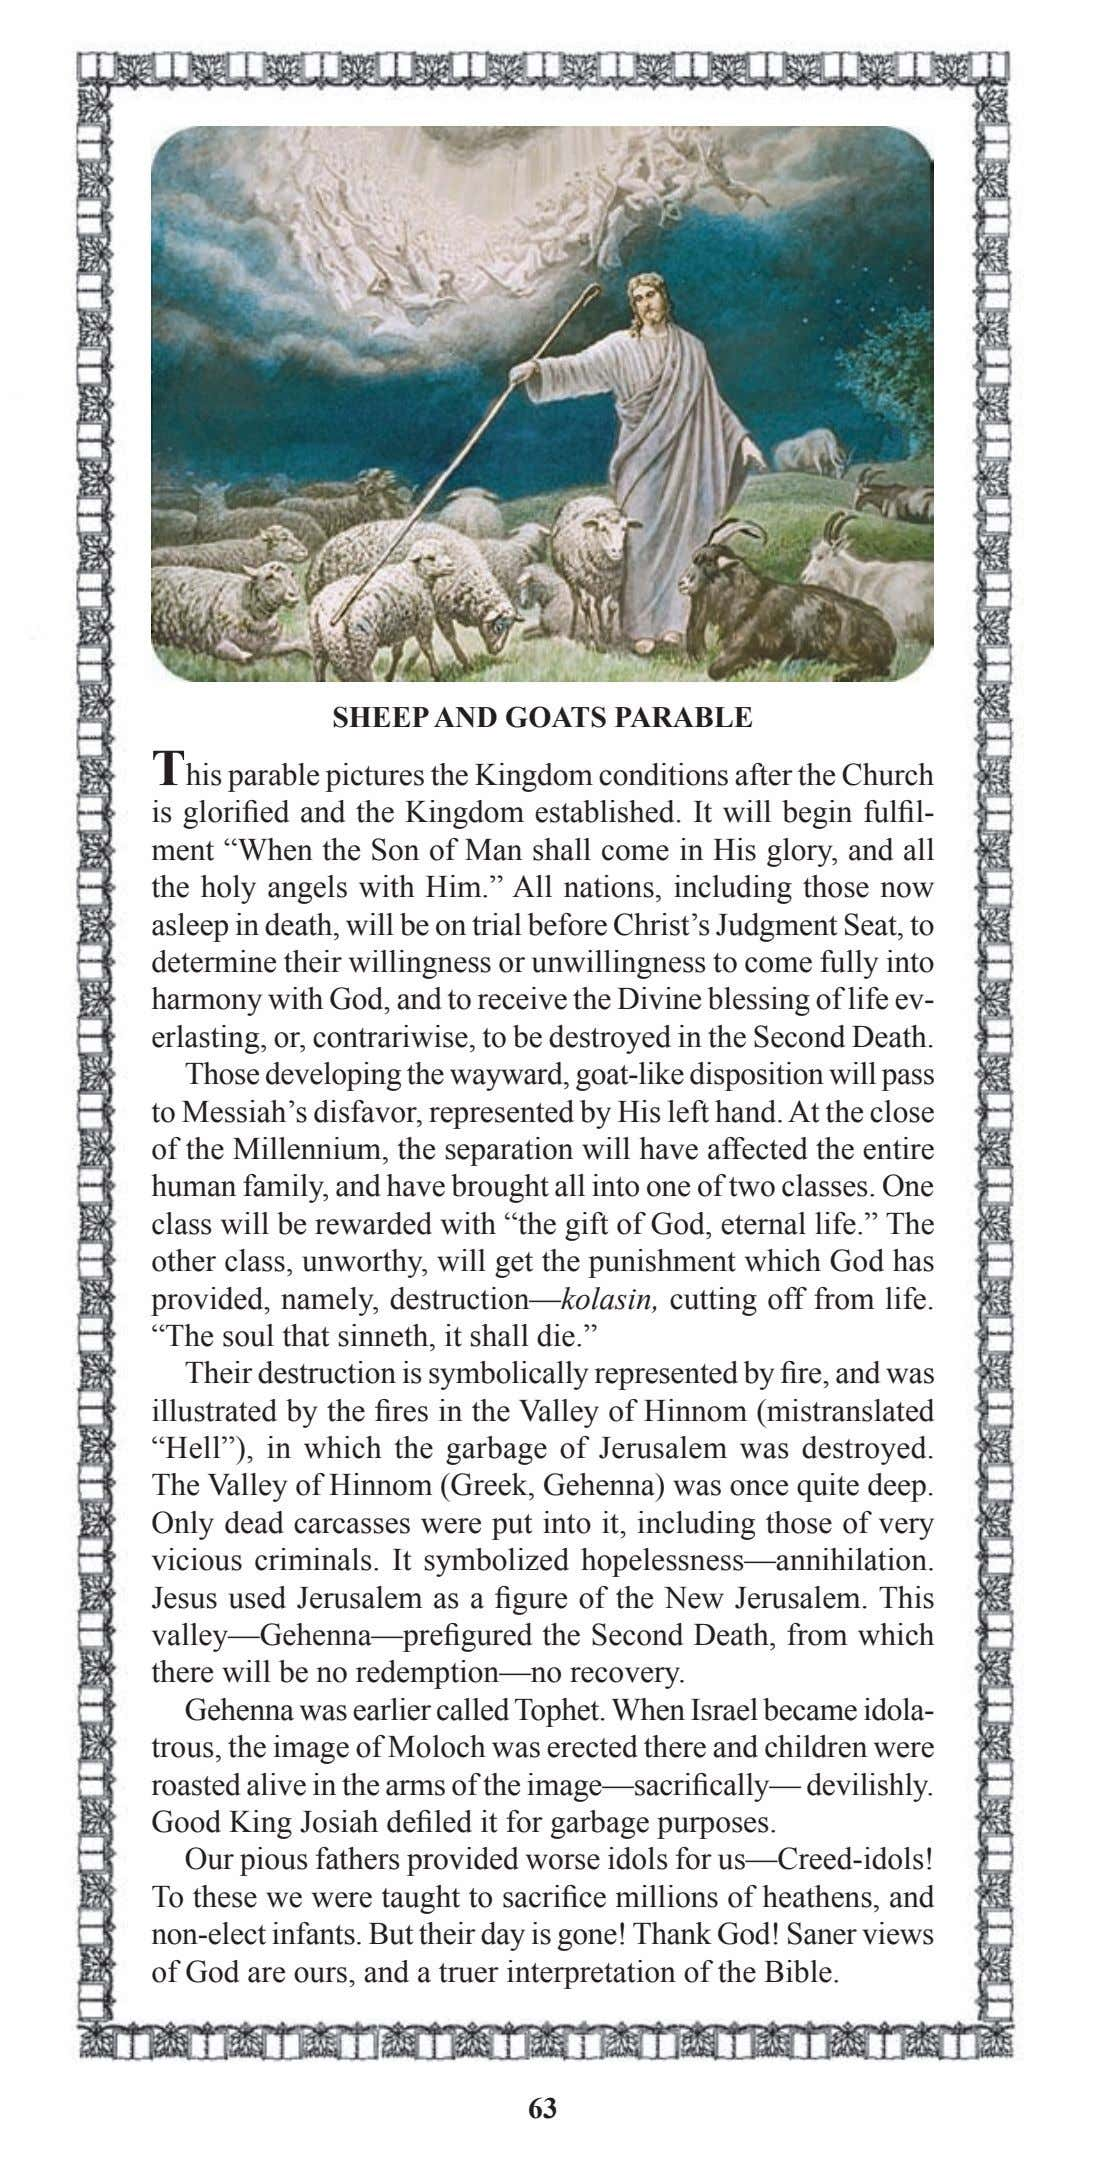 SHEEP AND GOATS PARABLE This parable pictures the Kingdom conditions after the Church is glorified